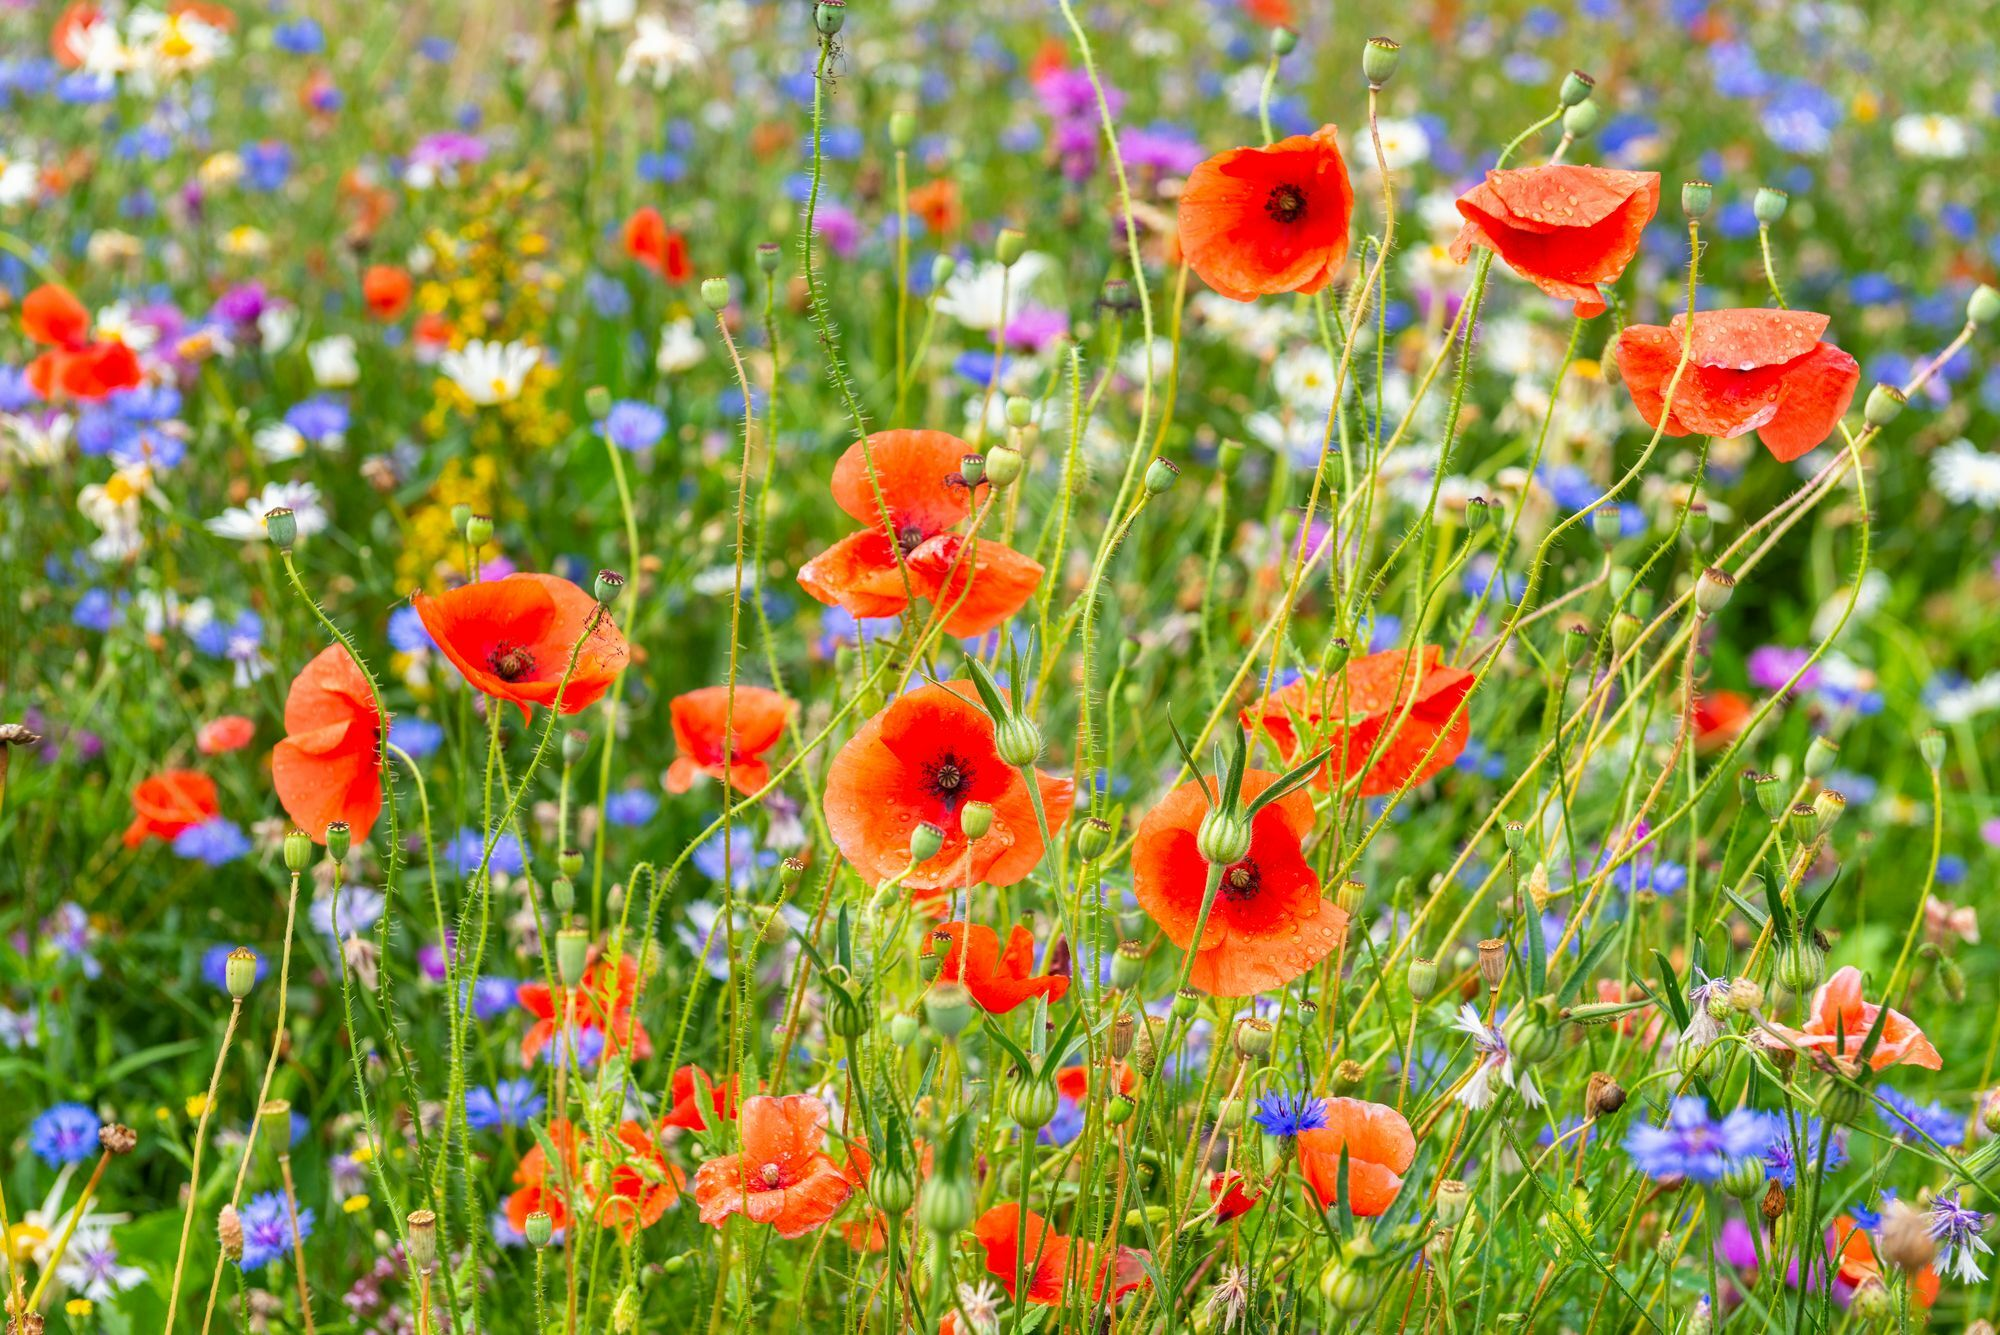 Annual Poppies are fast-growing and easy flowers that can be picked from the garden as well as bouquets.